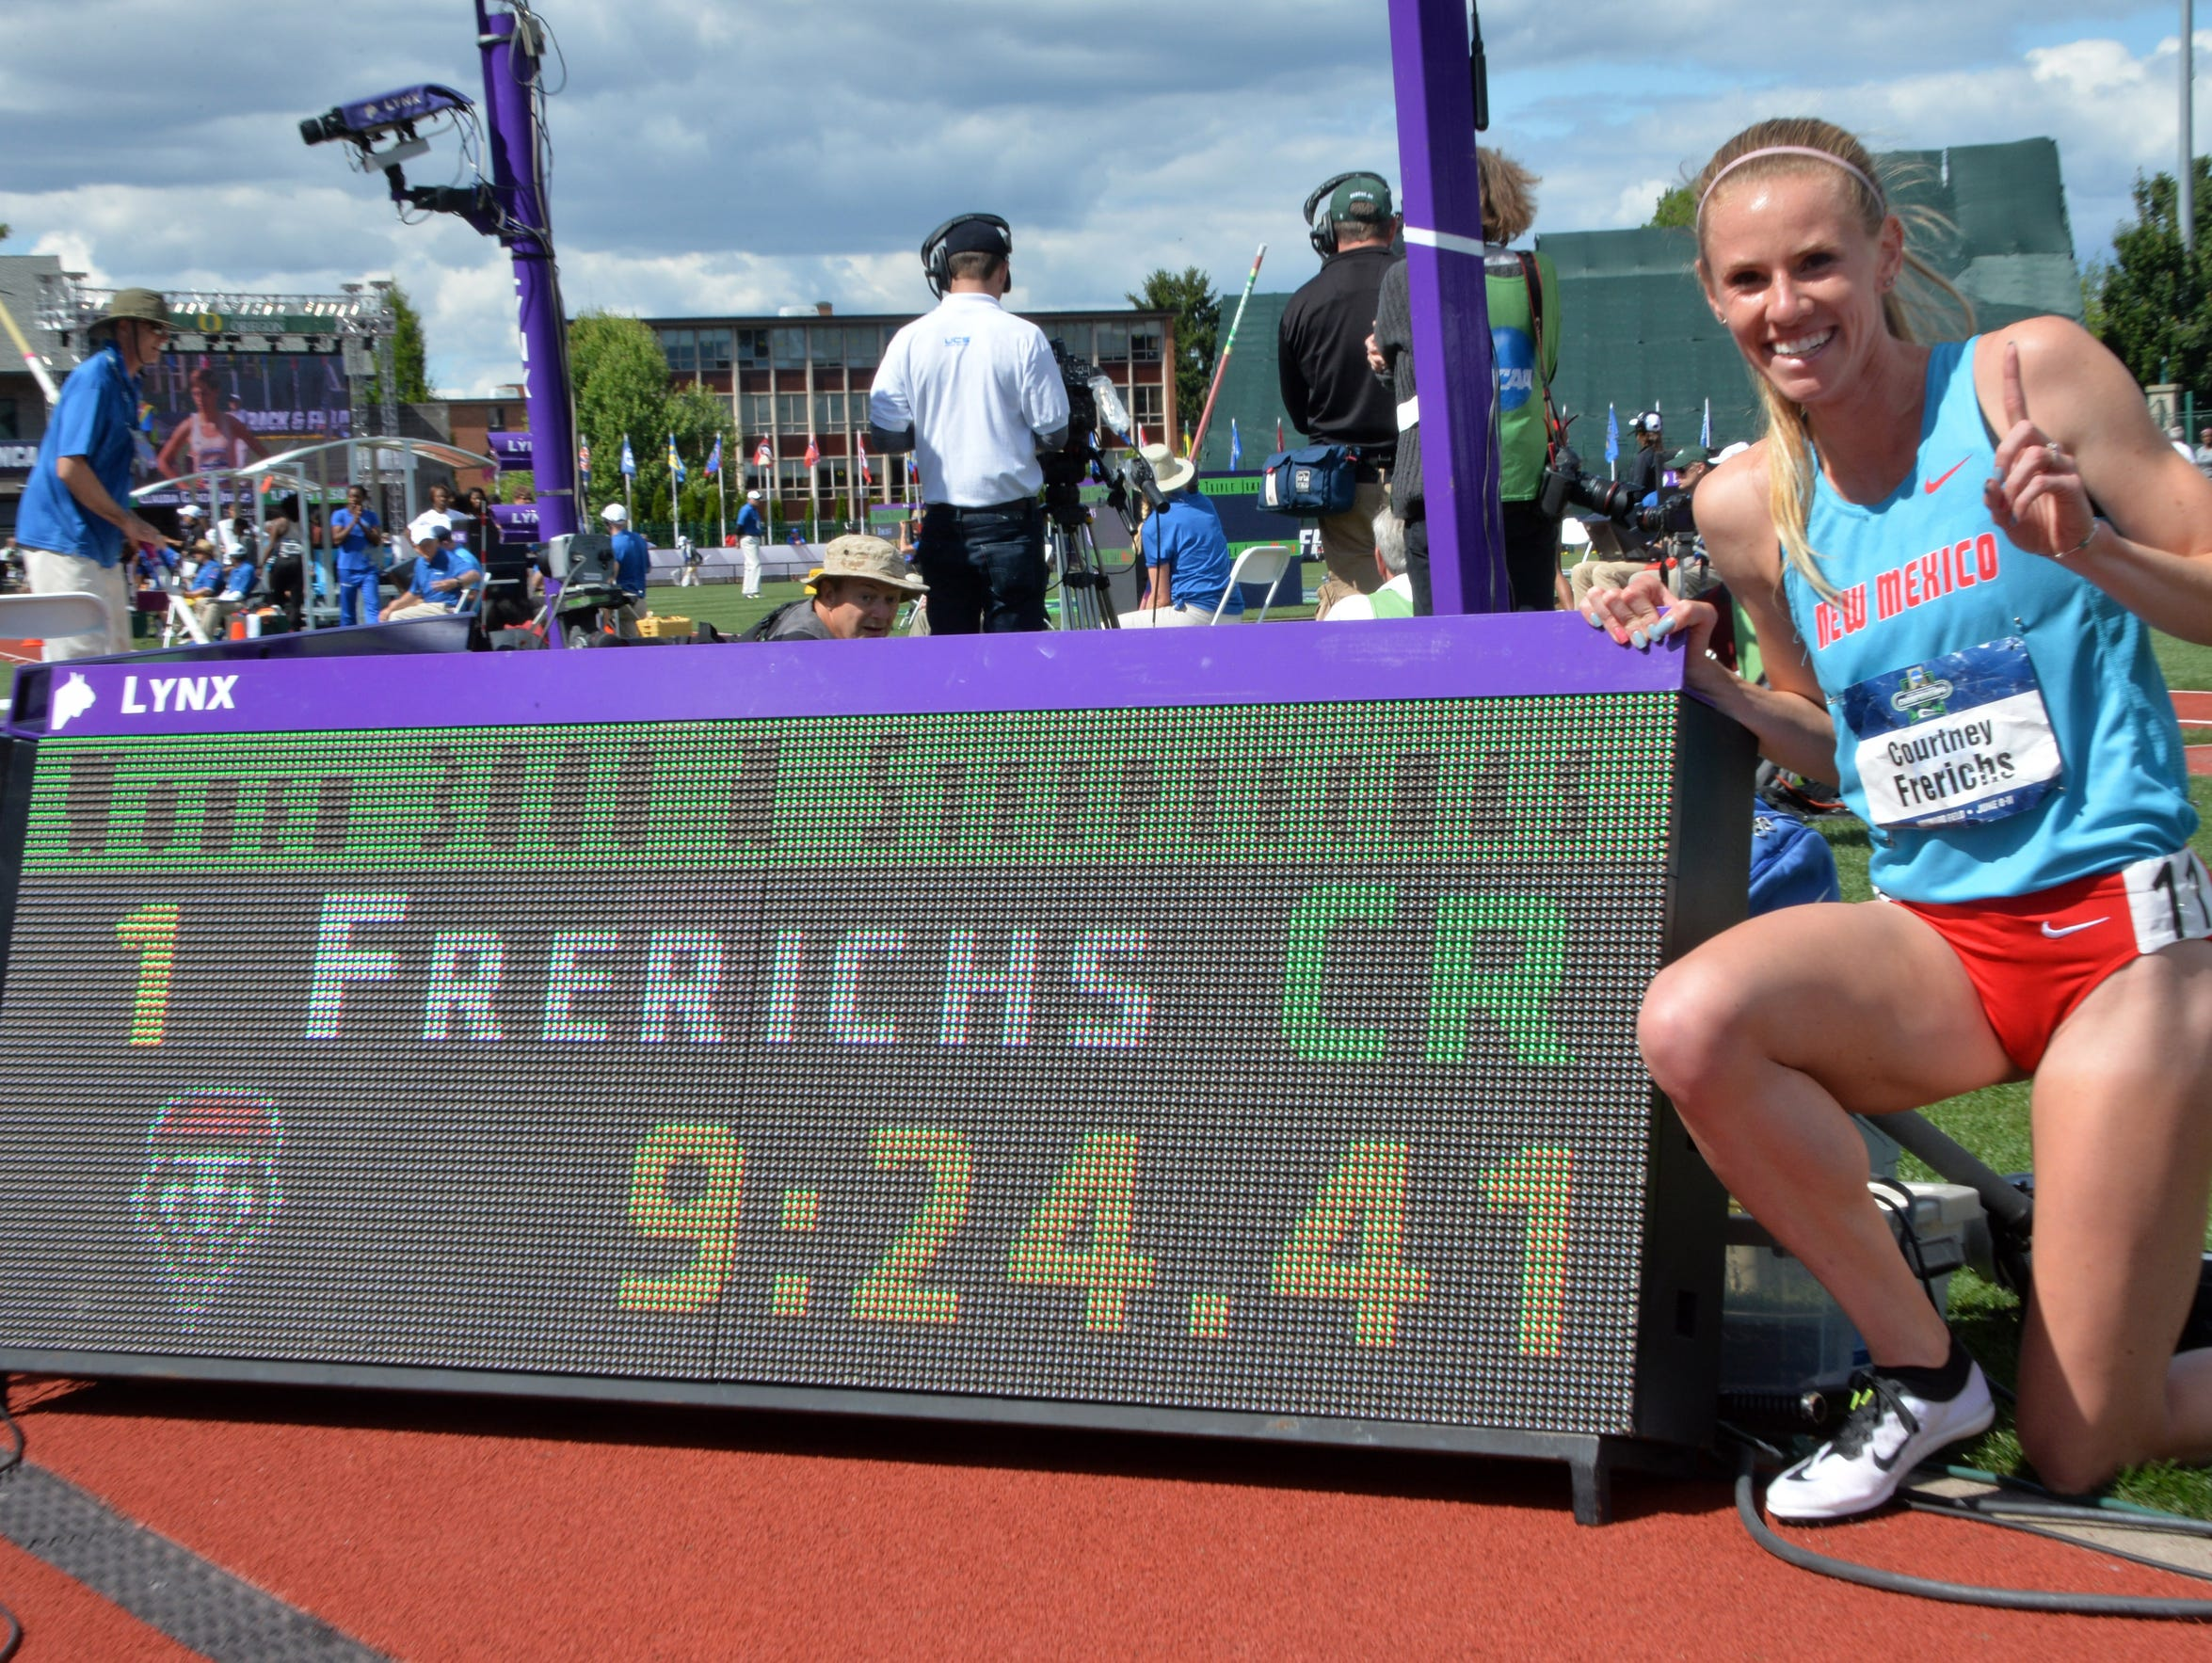 Courtney Frerichs set an NCAA record in her winning